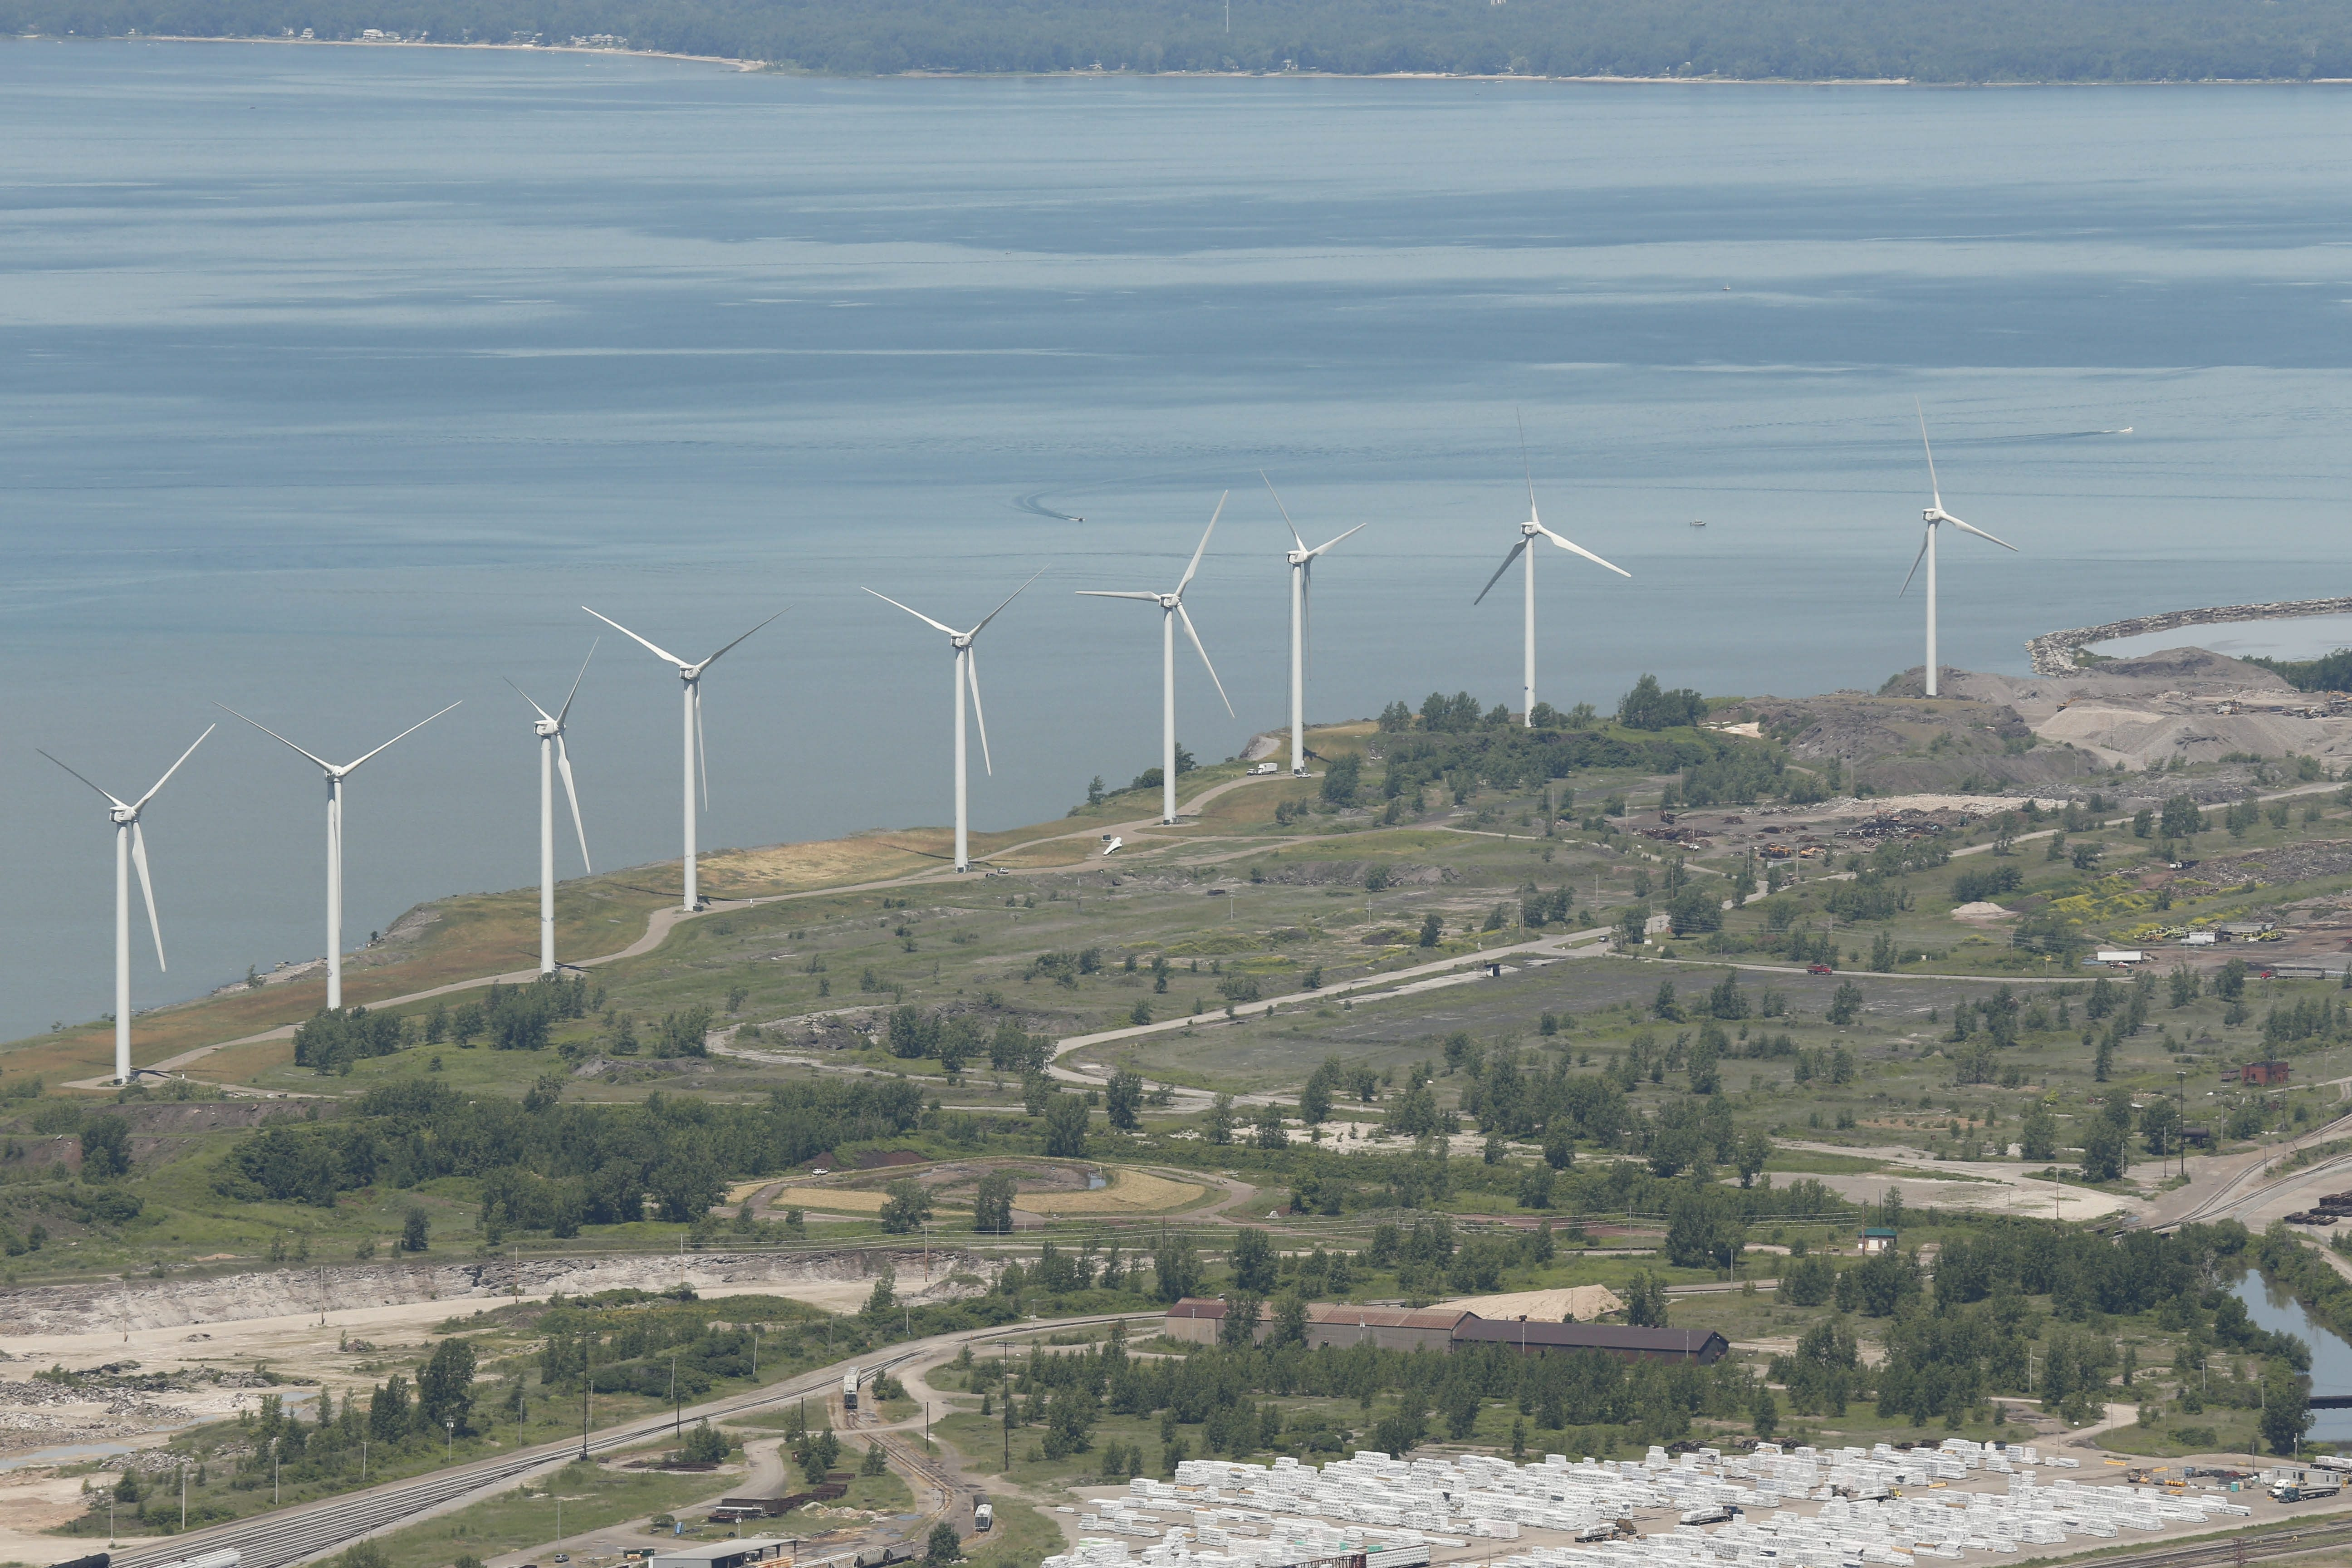 Extending the state's renewable energy program could lead to more projects like Steel Winds in Lackawanna. (Derek Gee/Buffalo News)